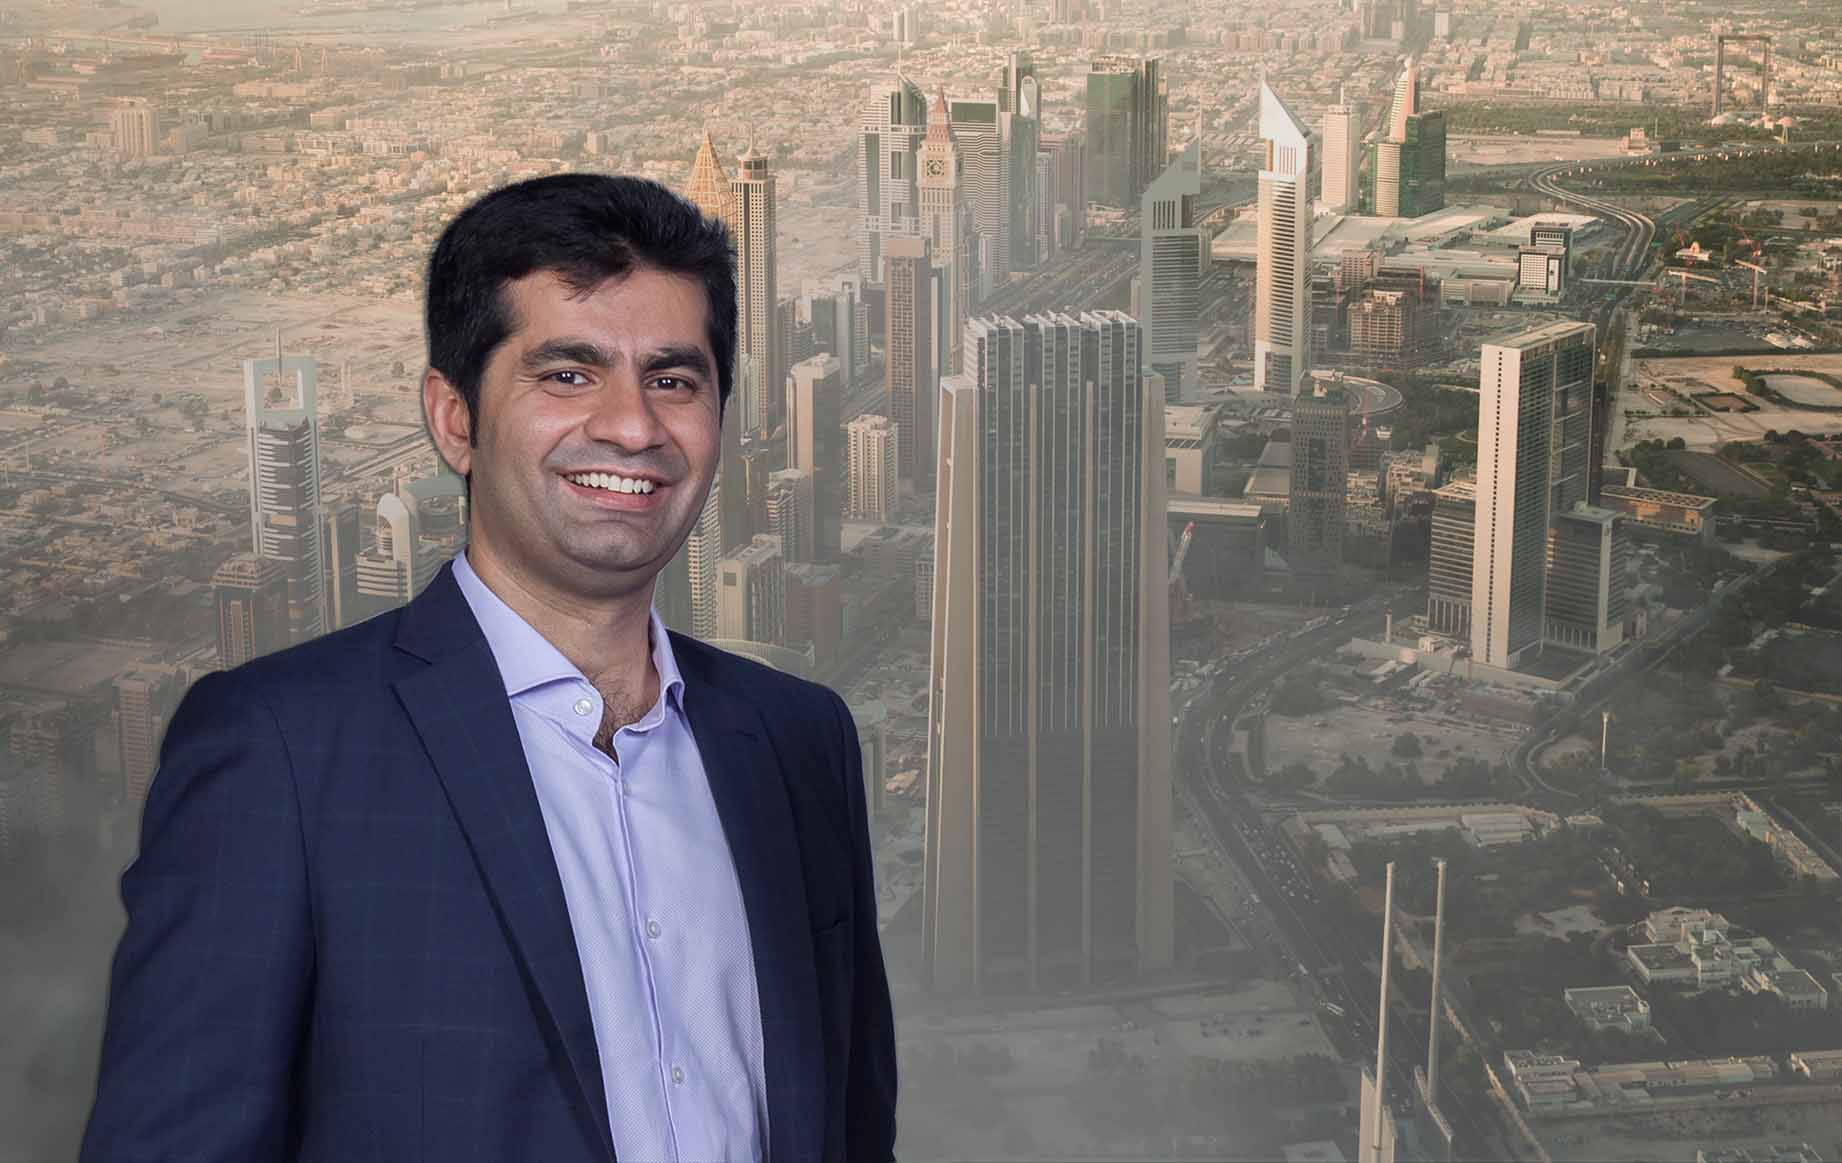 Careem Builds Blockchain-Based Wallet to Increase Ease of Payment CEO Mudassir Sheikha Dubai ride sharing